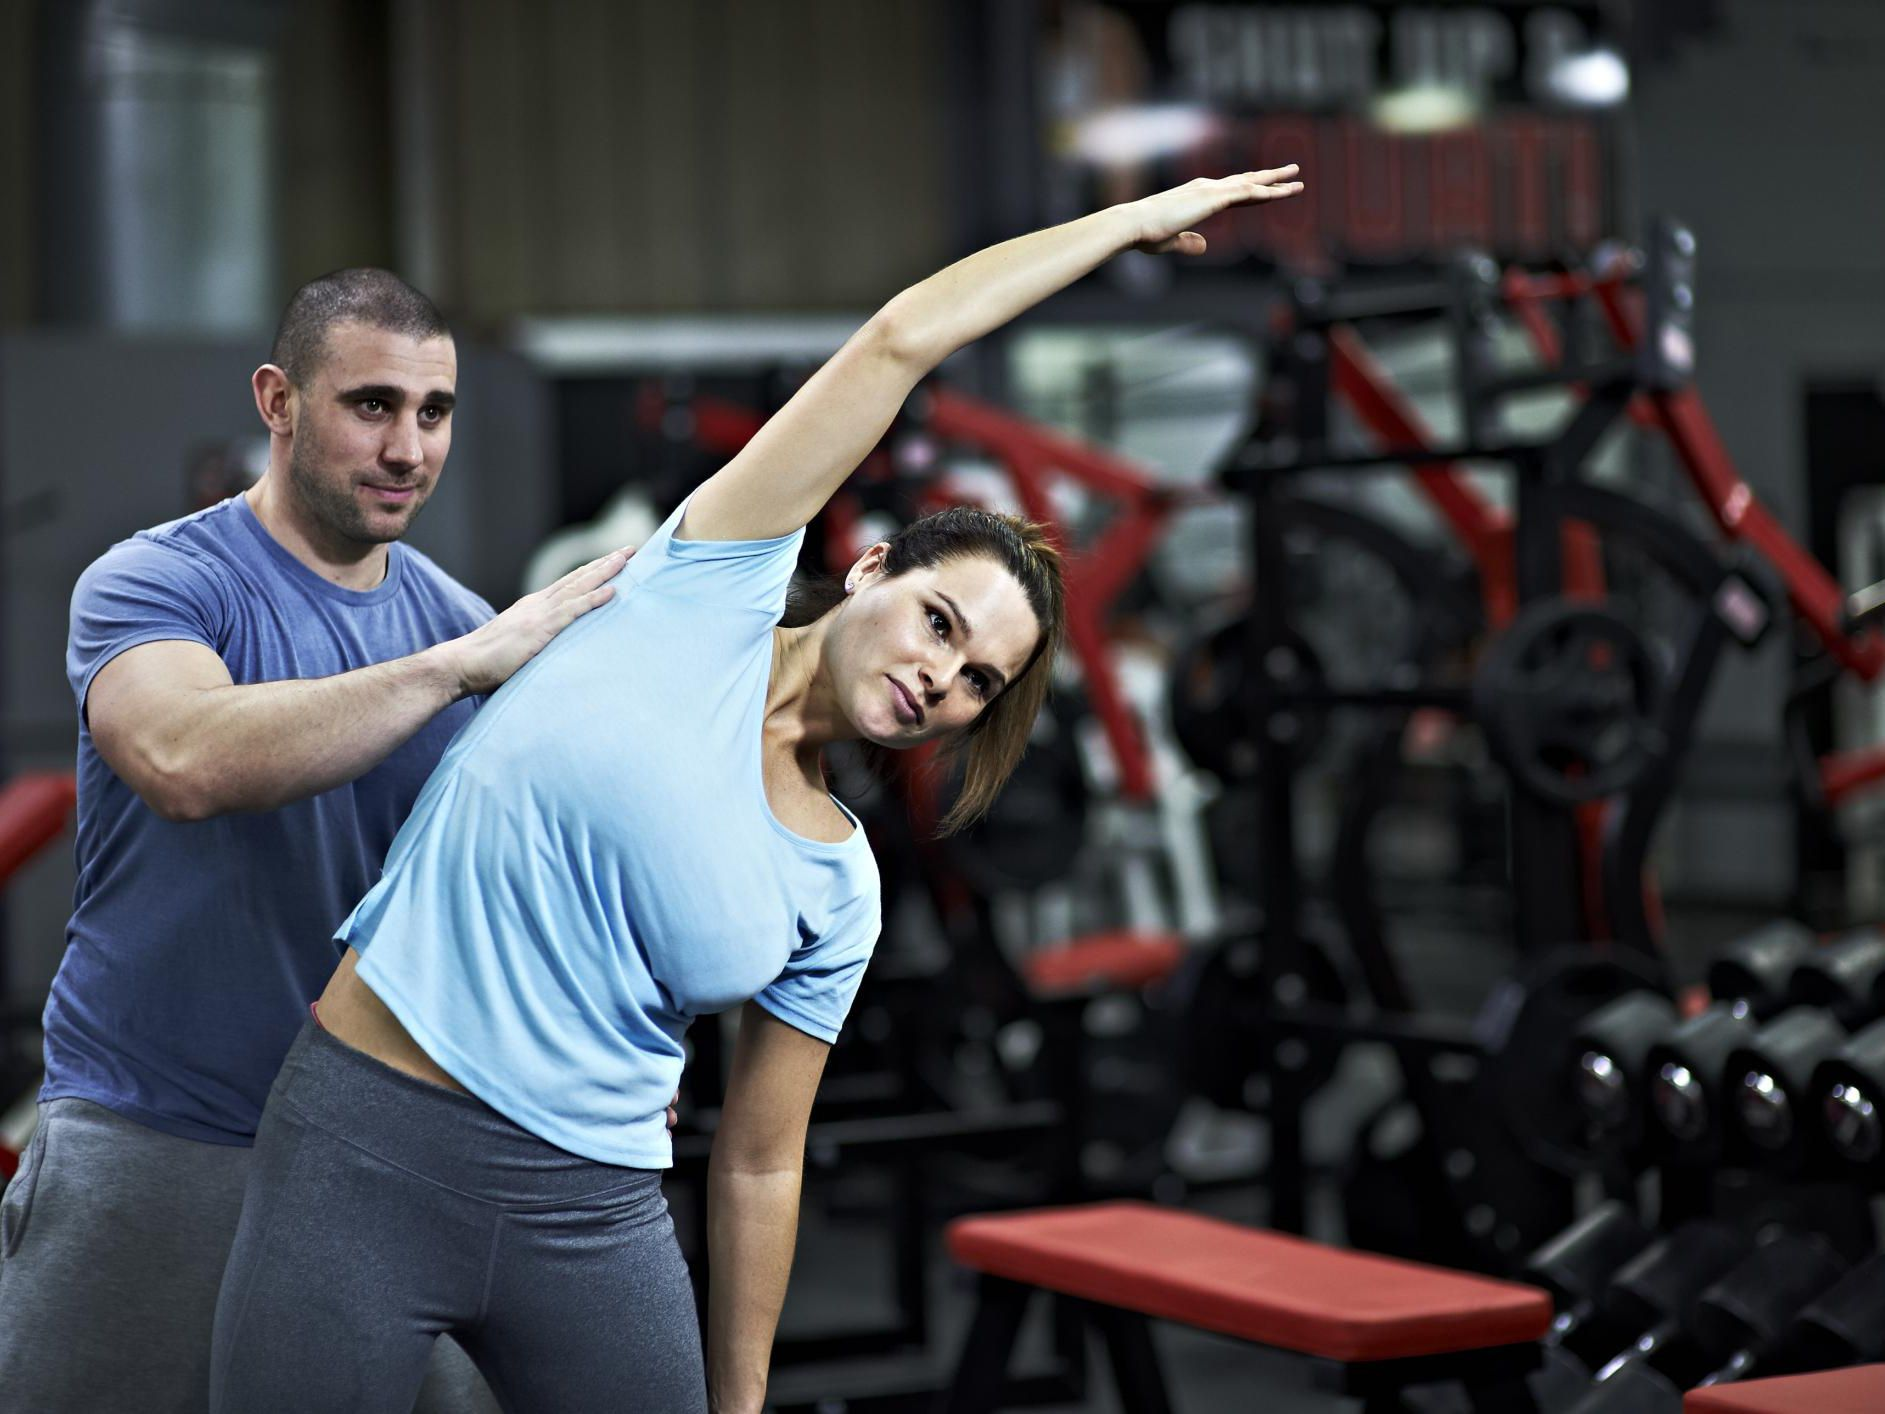 Basic Concepts About Fitness Testing